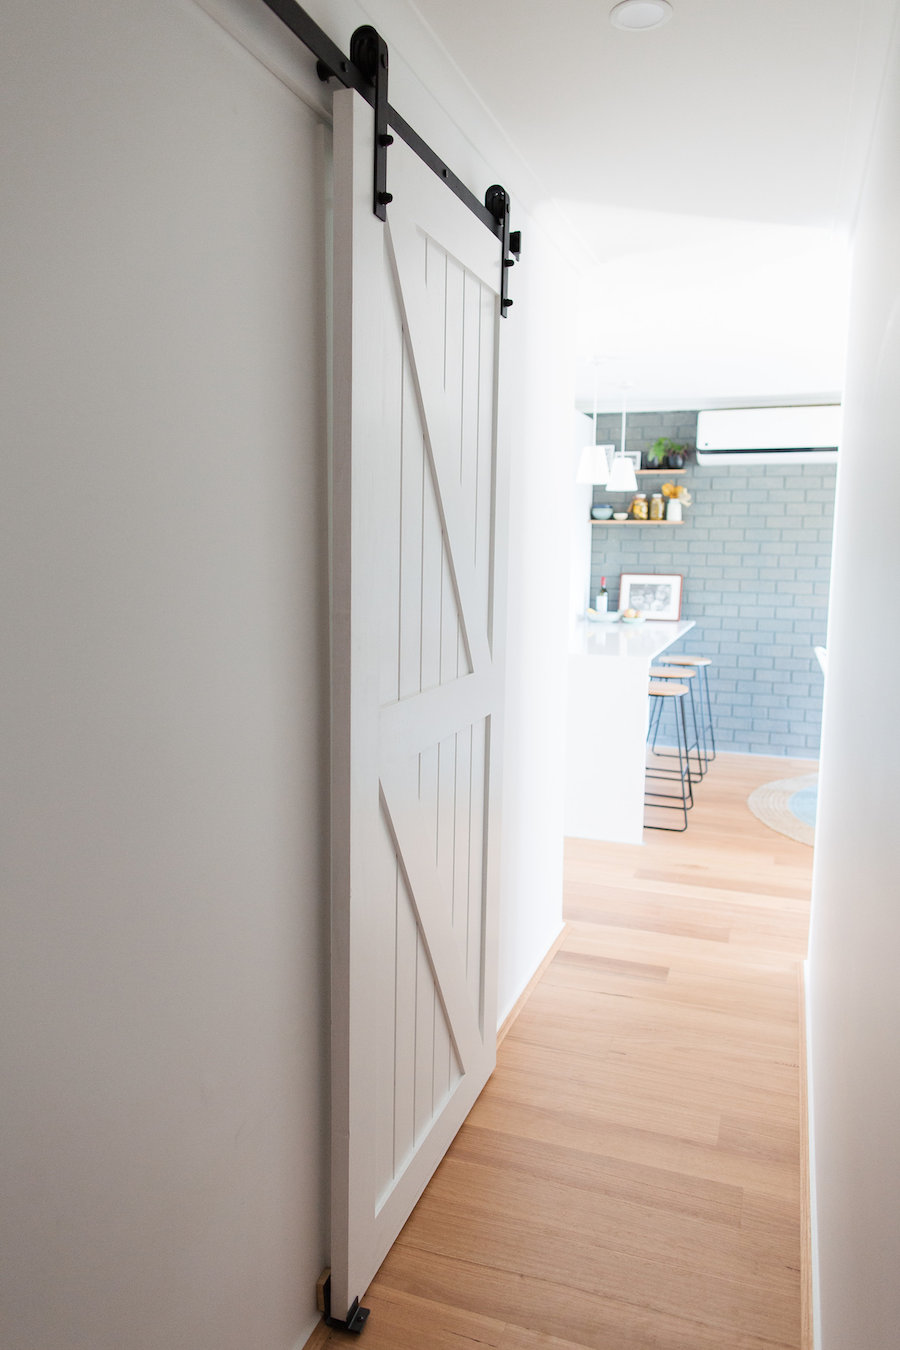 How To Install A Barn Door 10 Easy Steps To Install Your Own Barn Door